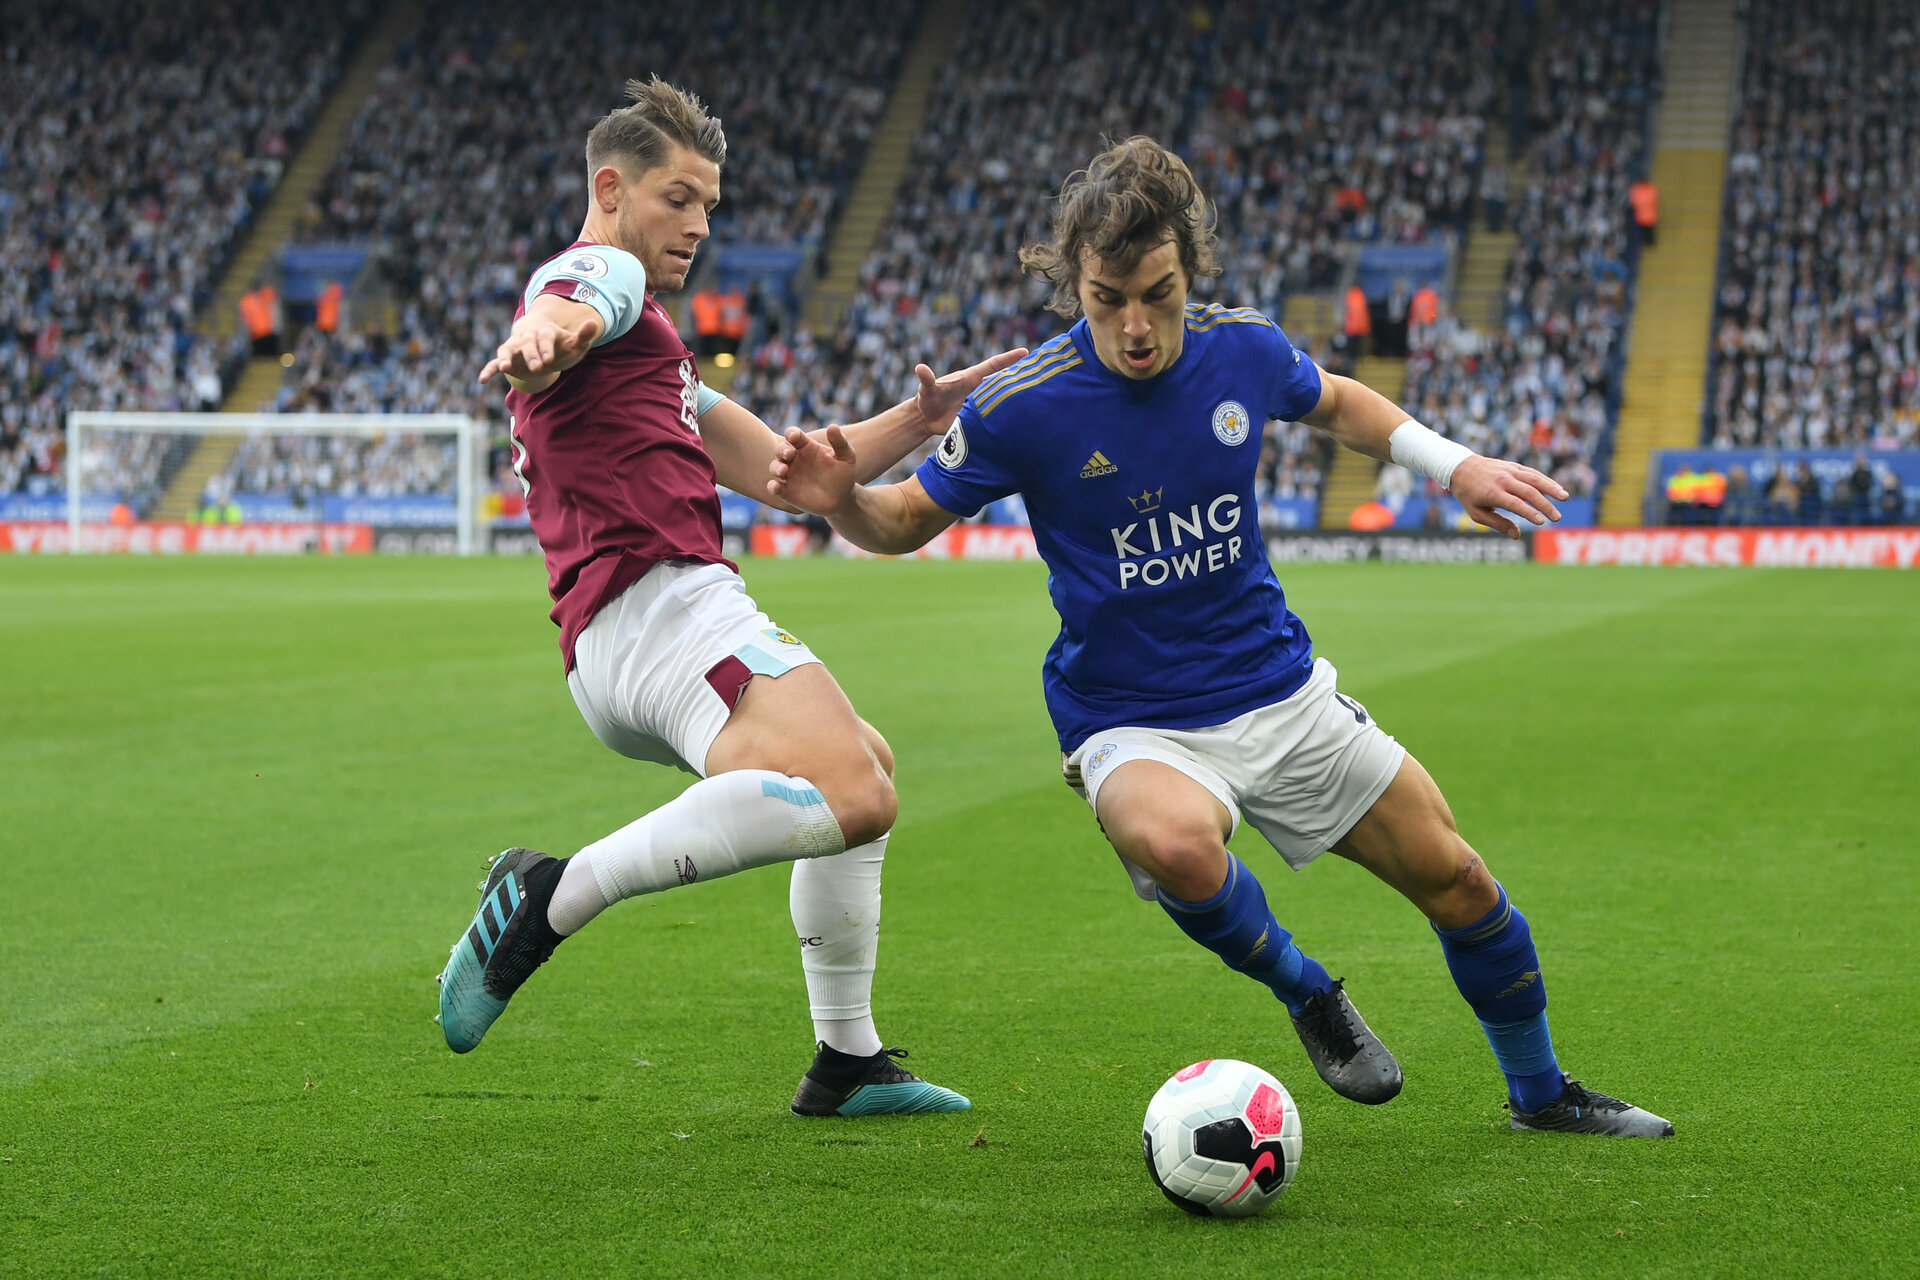 LEICESTER, ENGLAND - OCTOBER 19: Caglar Soyuncu of Leicester City battles for possession with James Tarkowski of Burnley during the Premier League match between Leicester City and Burnley FC at The King Power Stadium on October 19, 2019 in Leicester, United Kingdom. (Photo by Michael Regan/Getty Images)